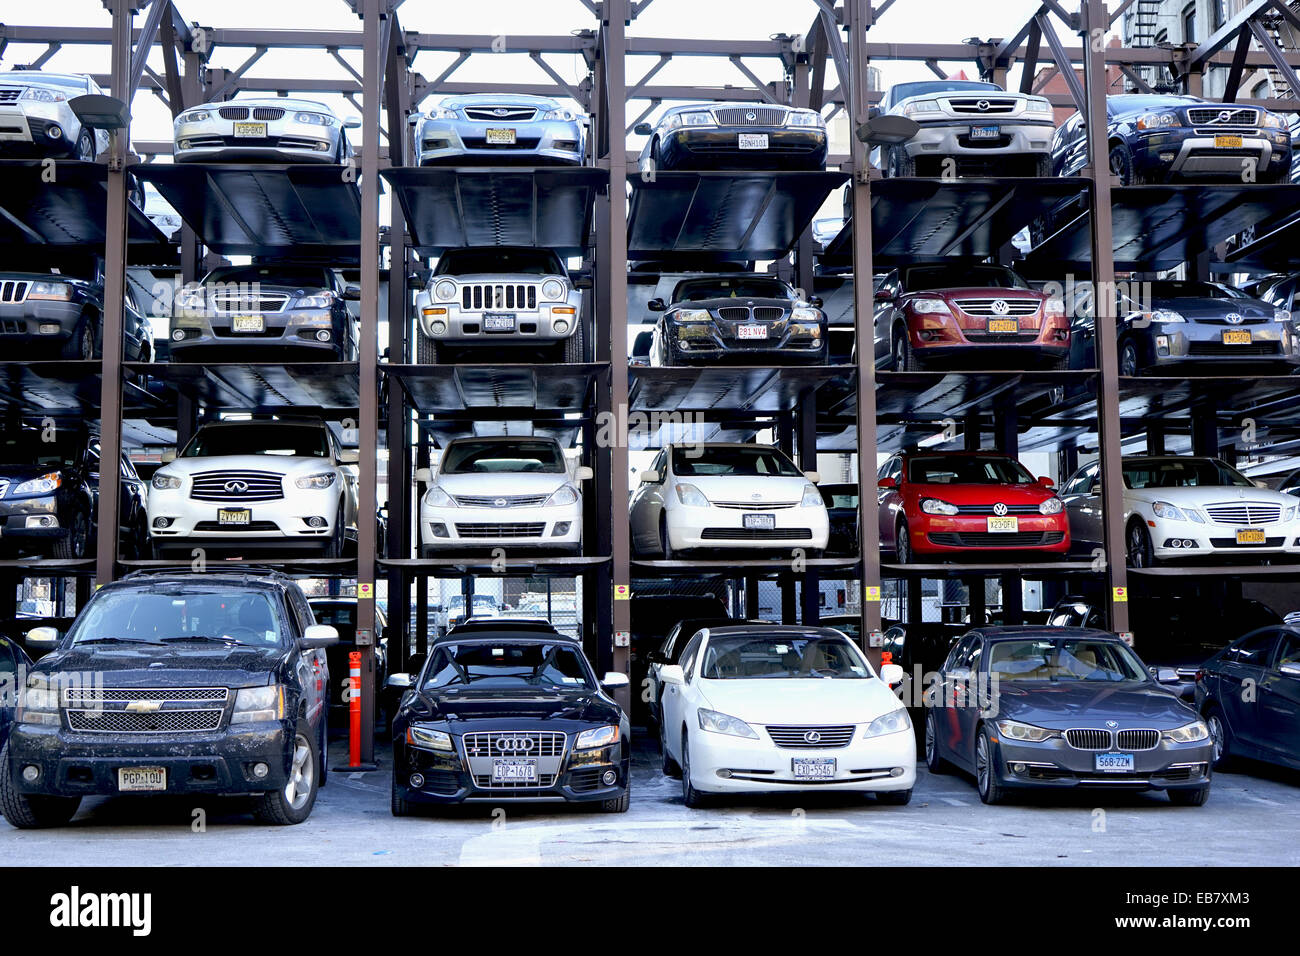 Compact Cars Stock Photos Compact Cars Stock Images Alamy